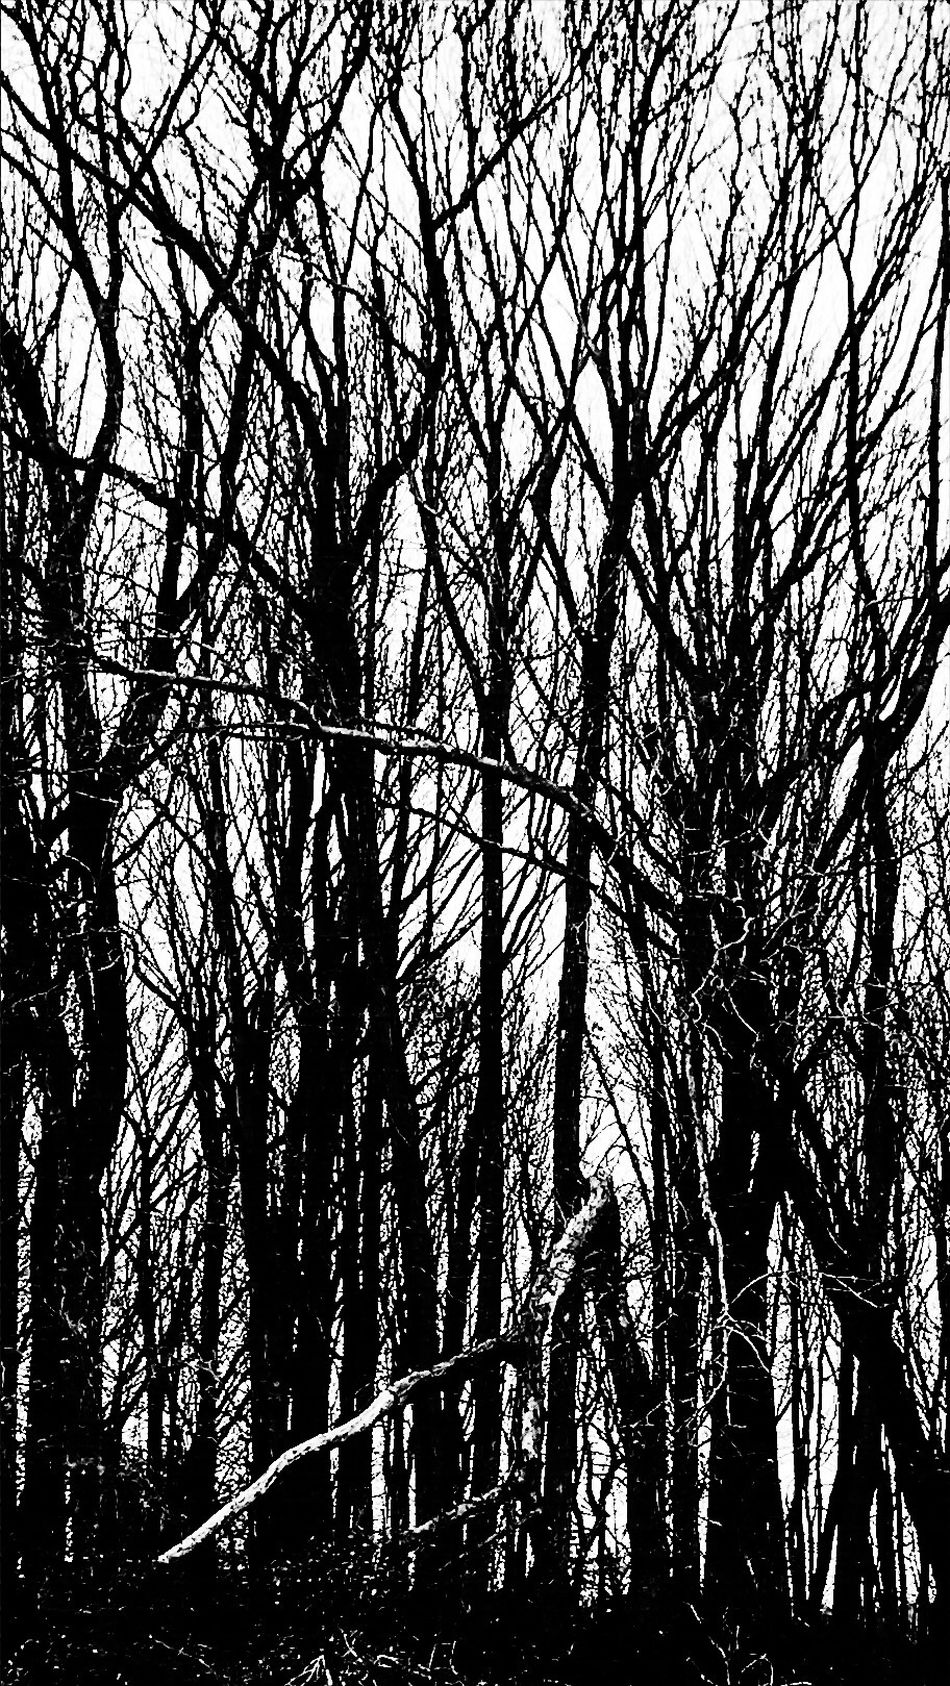 Forest in black and white Beauty In Nature Nature Tree Brokenbranches Trunks Tranquility Growth No People StillLifePhotography IPhone7Plus Camerafilters